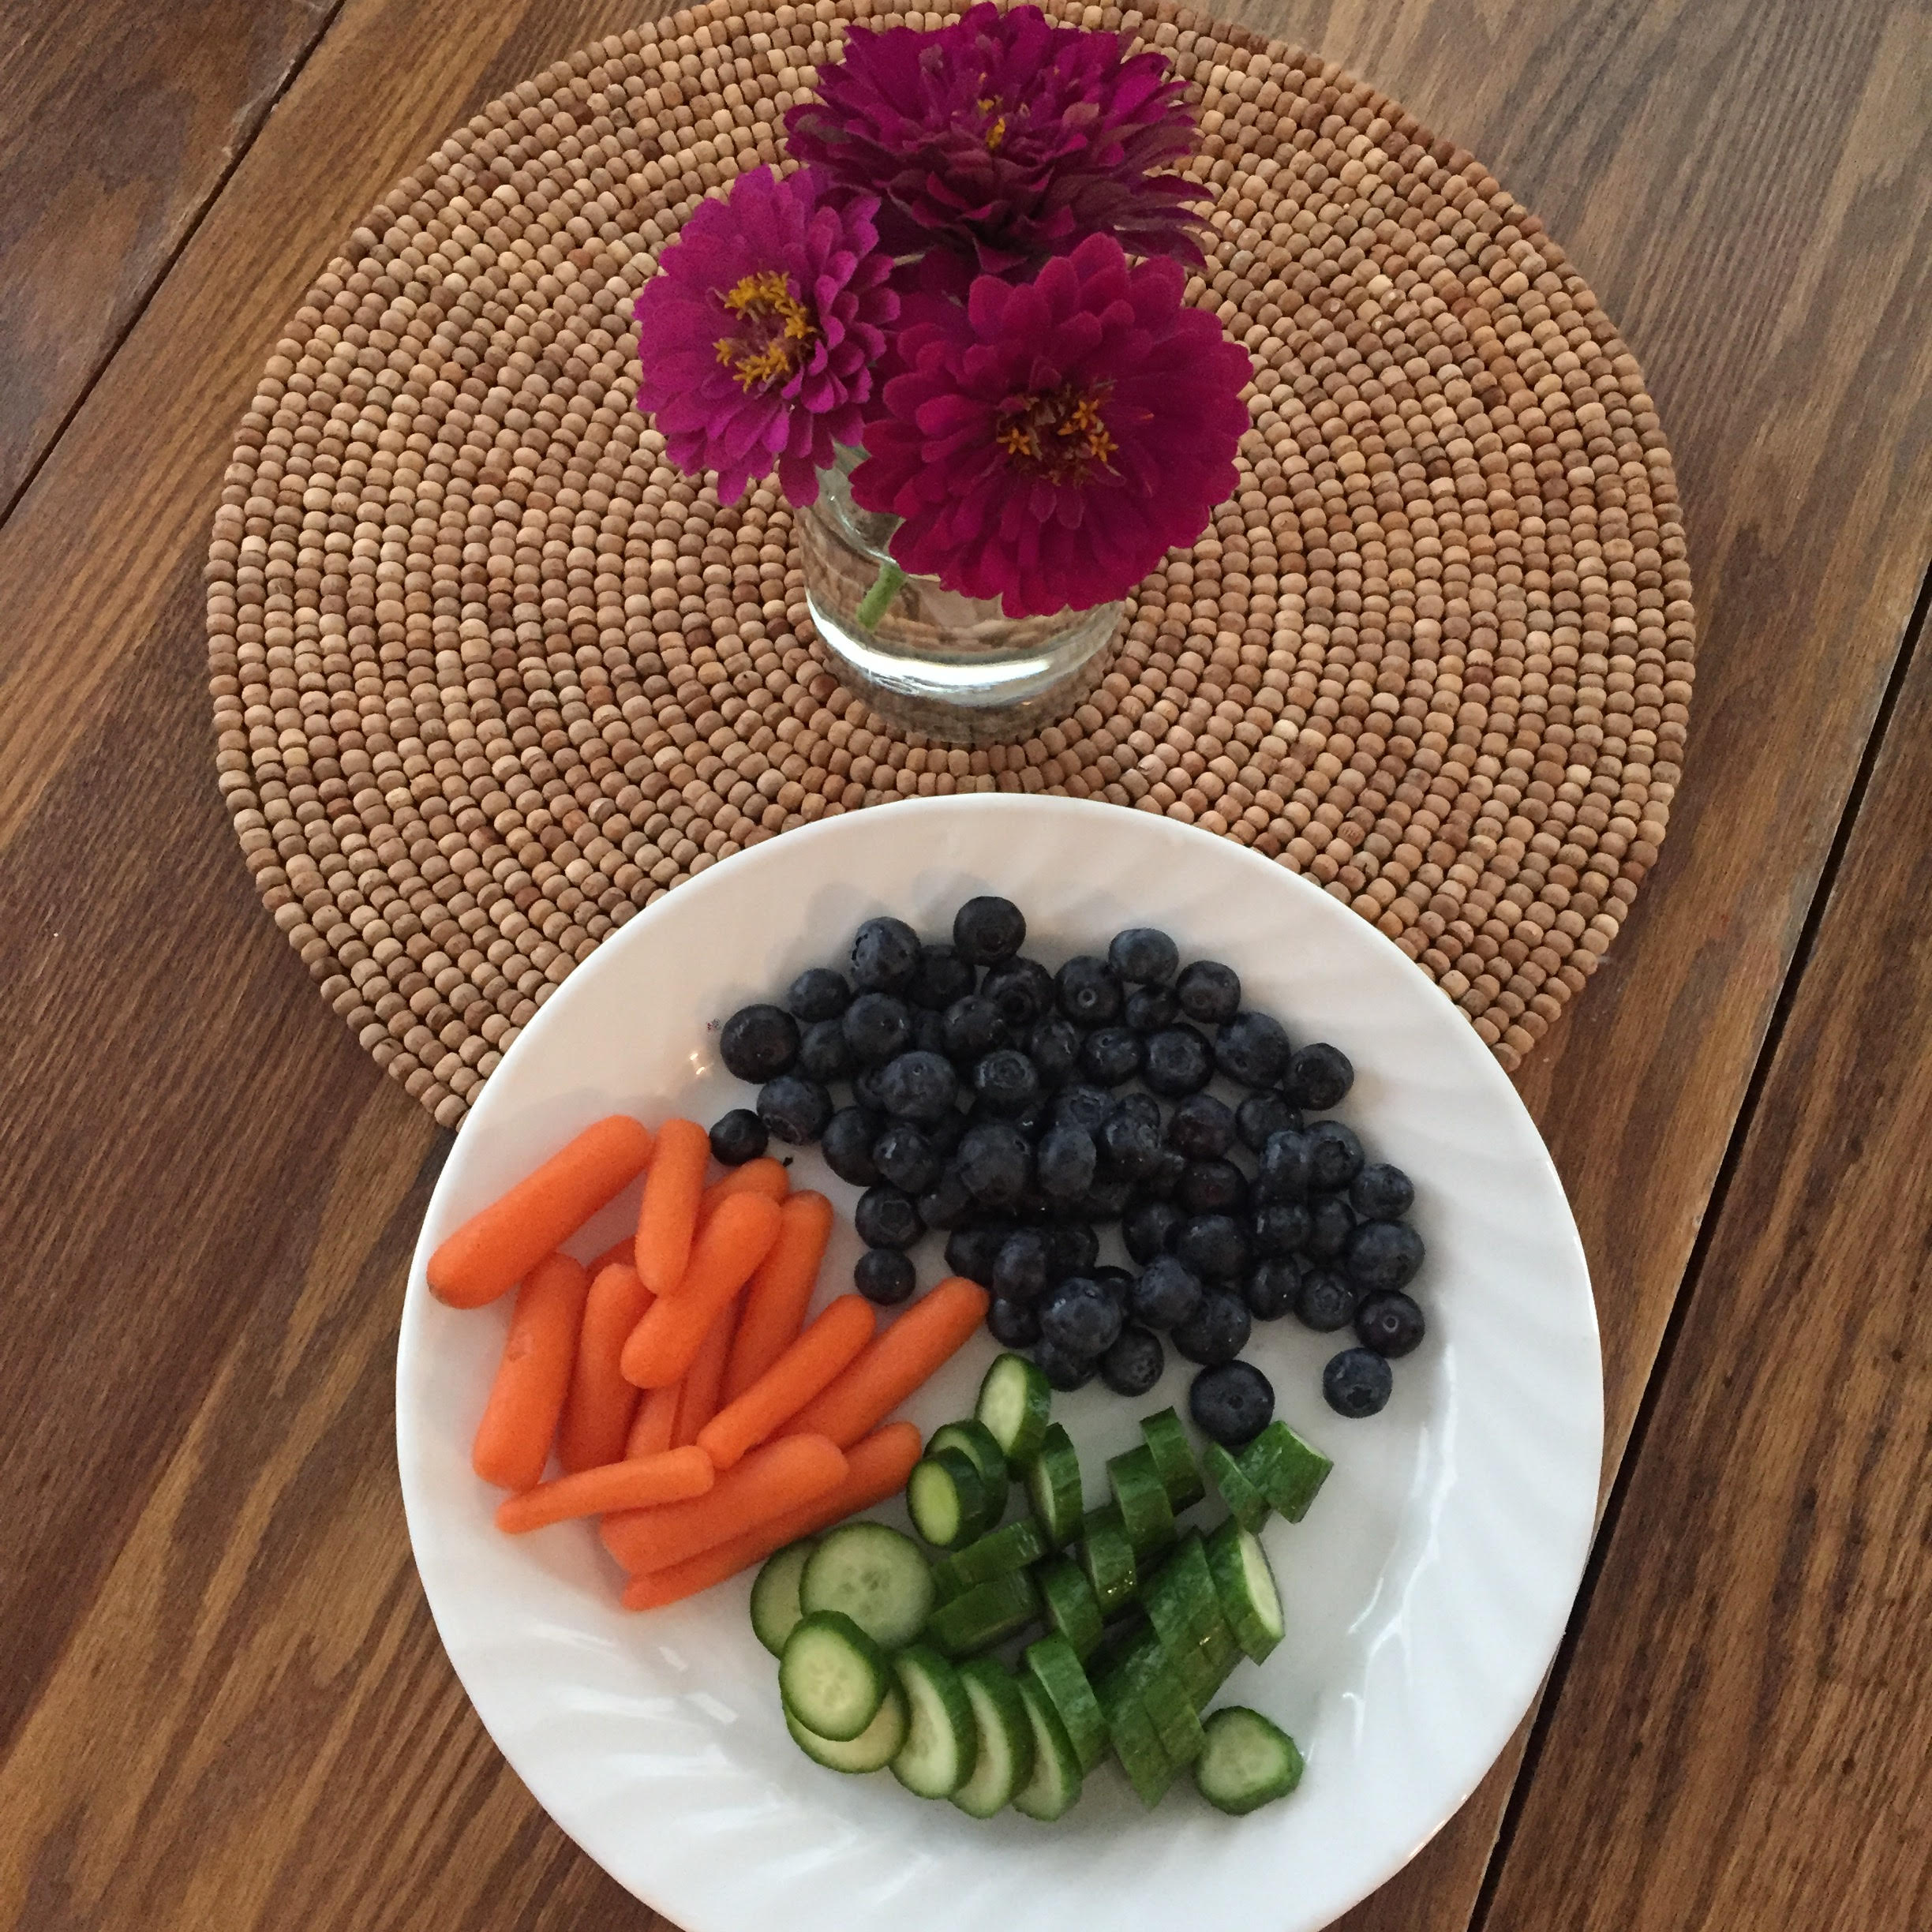 Making Healthy Eating a Priority